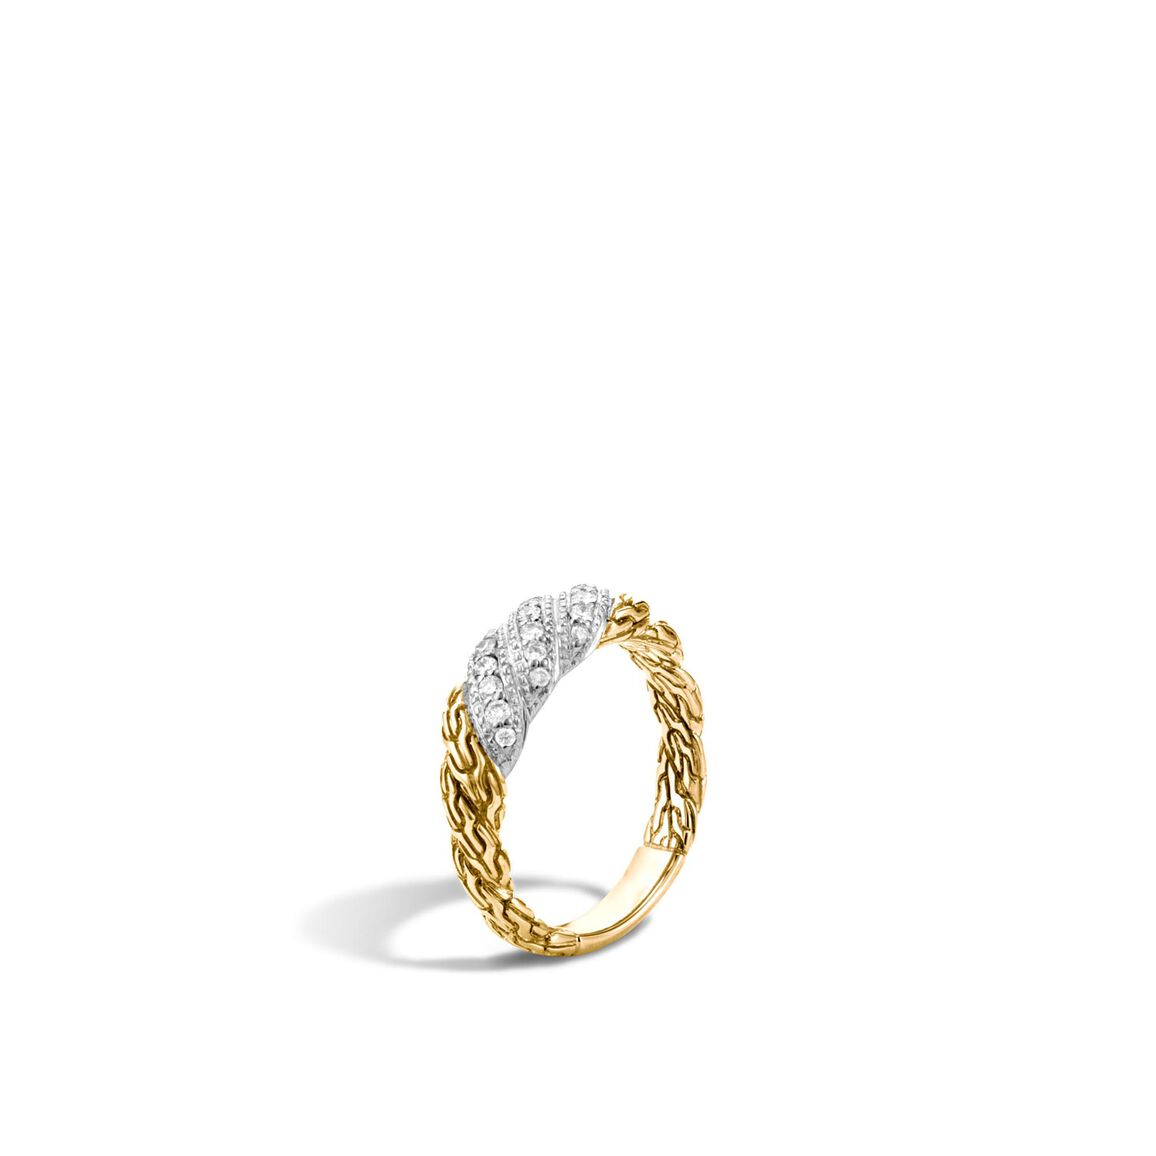 Twisted Chain 6.5MM Band Ring in 18K Gold with Diamonds